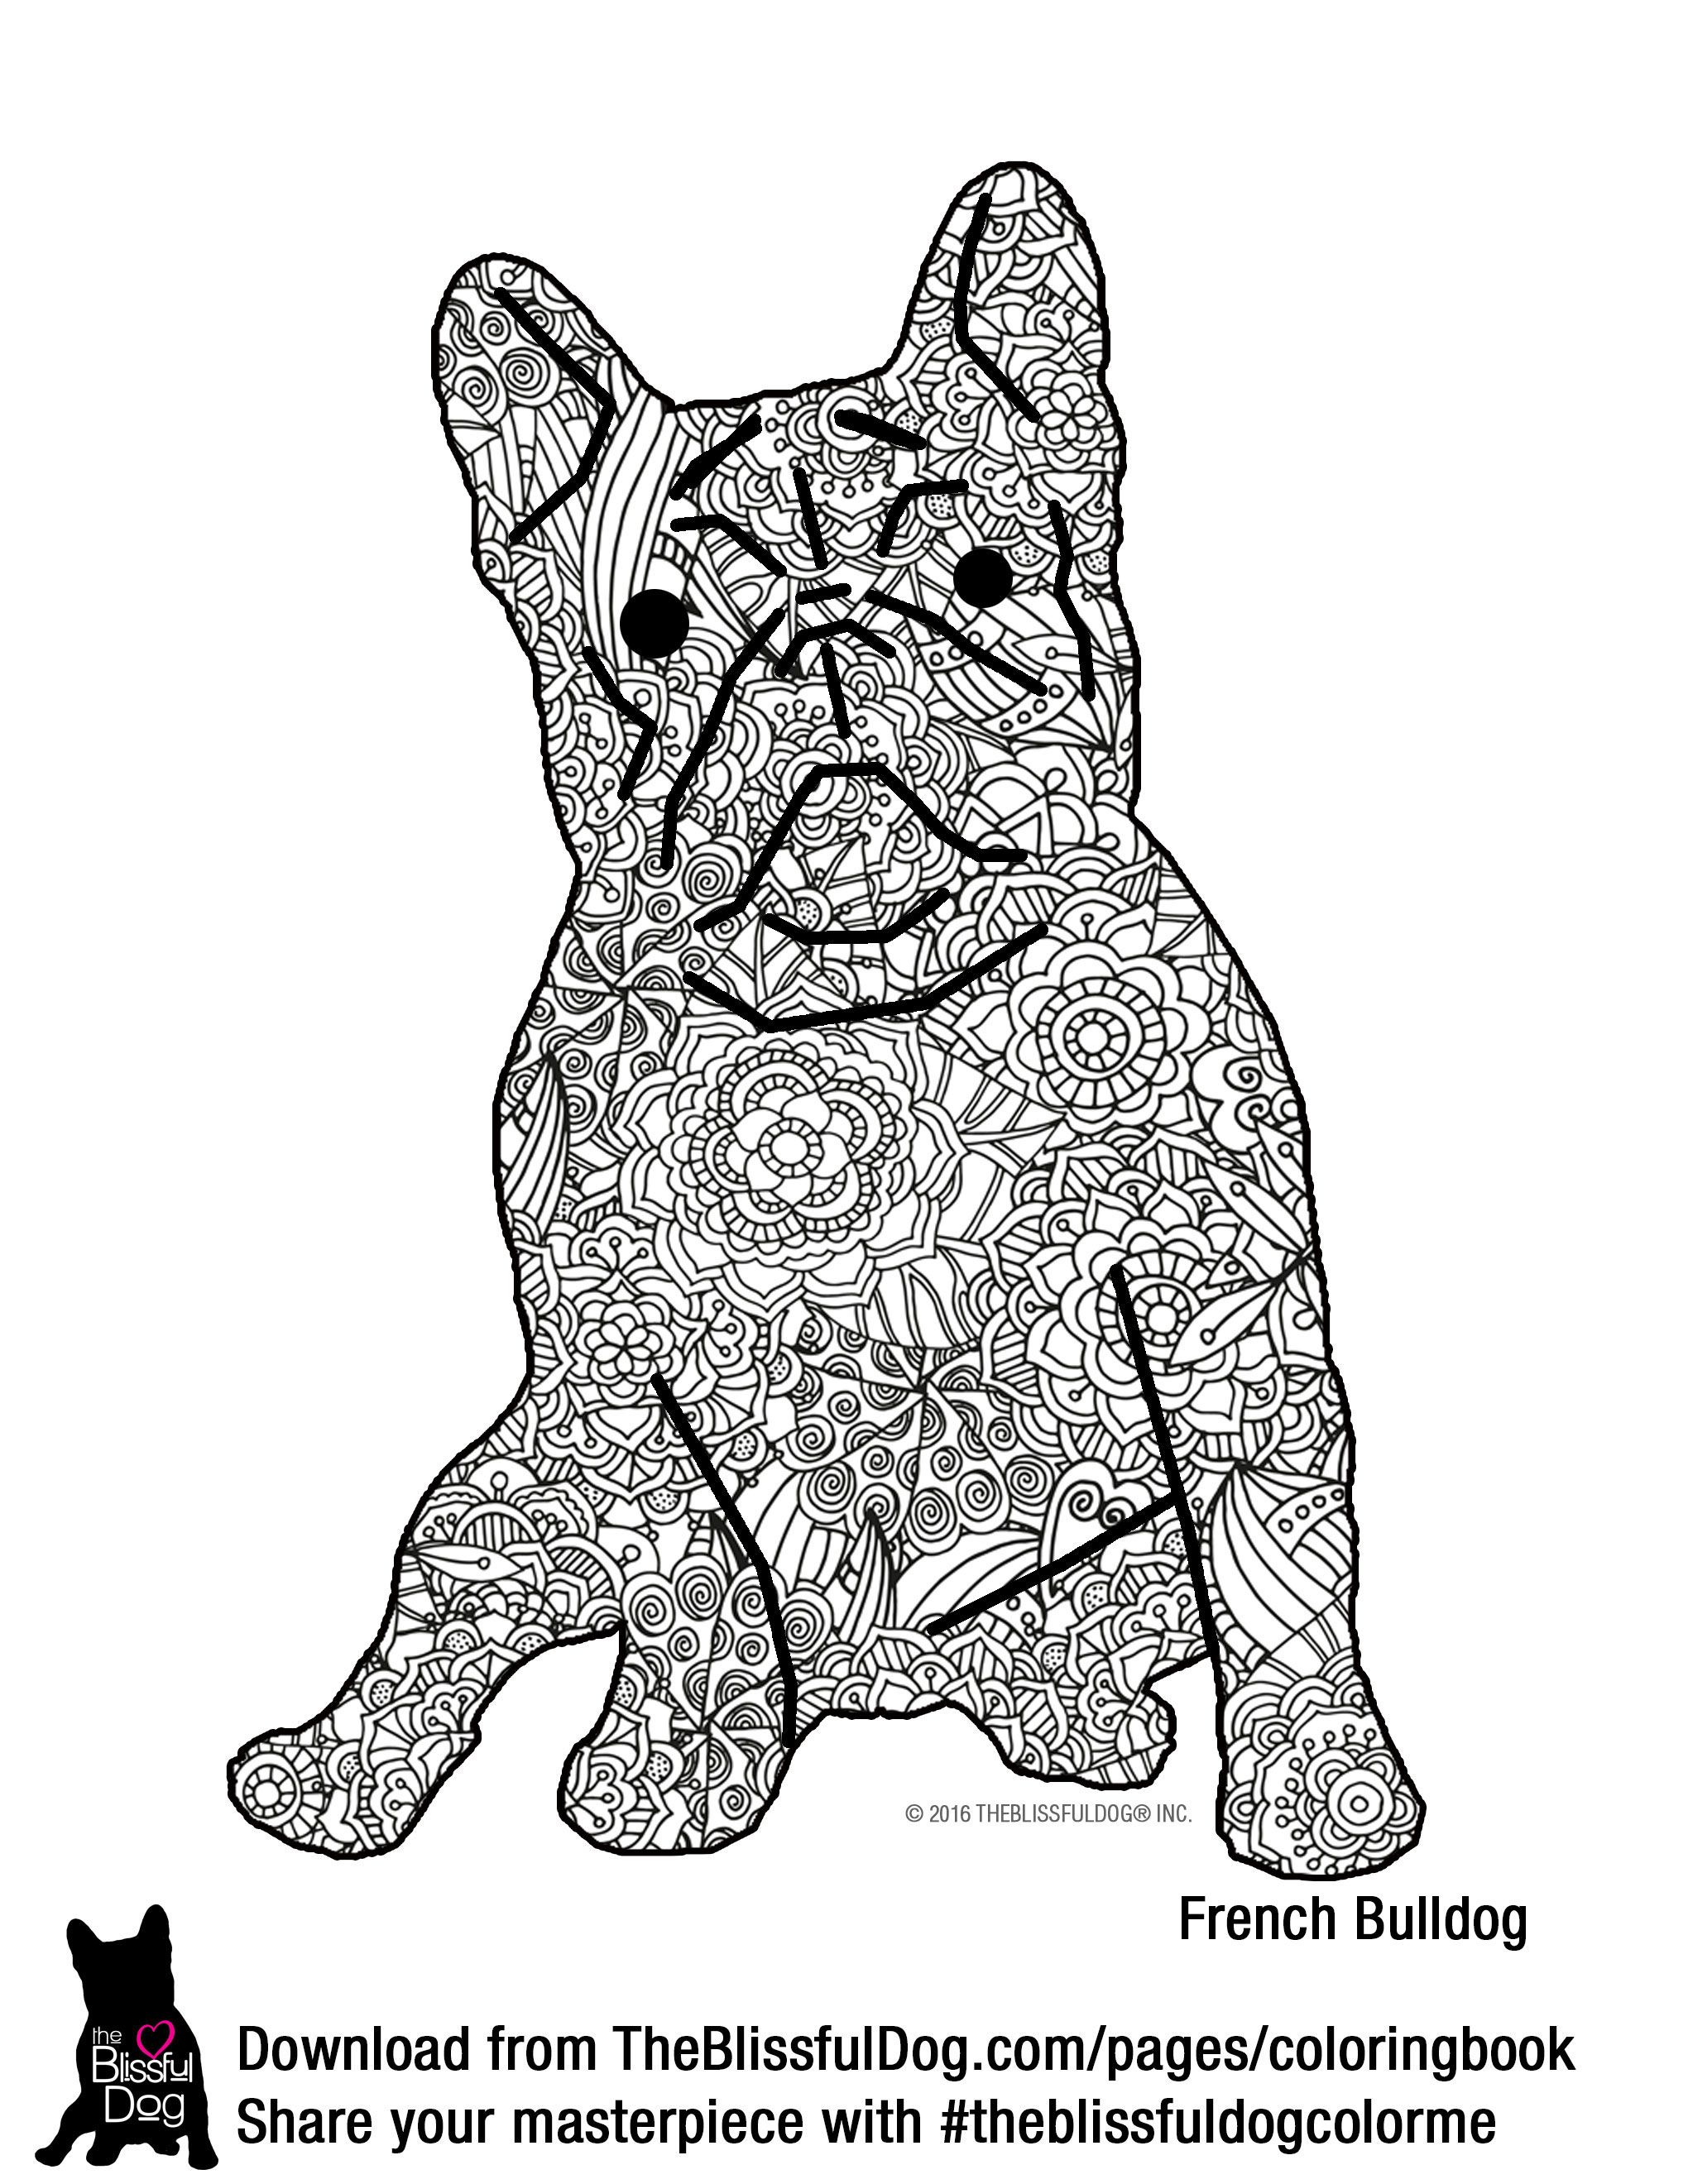 The Blissful Dog French Bulldog Coloring Page Big File So It Will Print On Us Letter Size Paper Send Dog Coloring Book Dog Coloring Page Puppy Coloring Pages